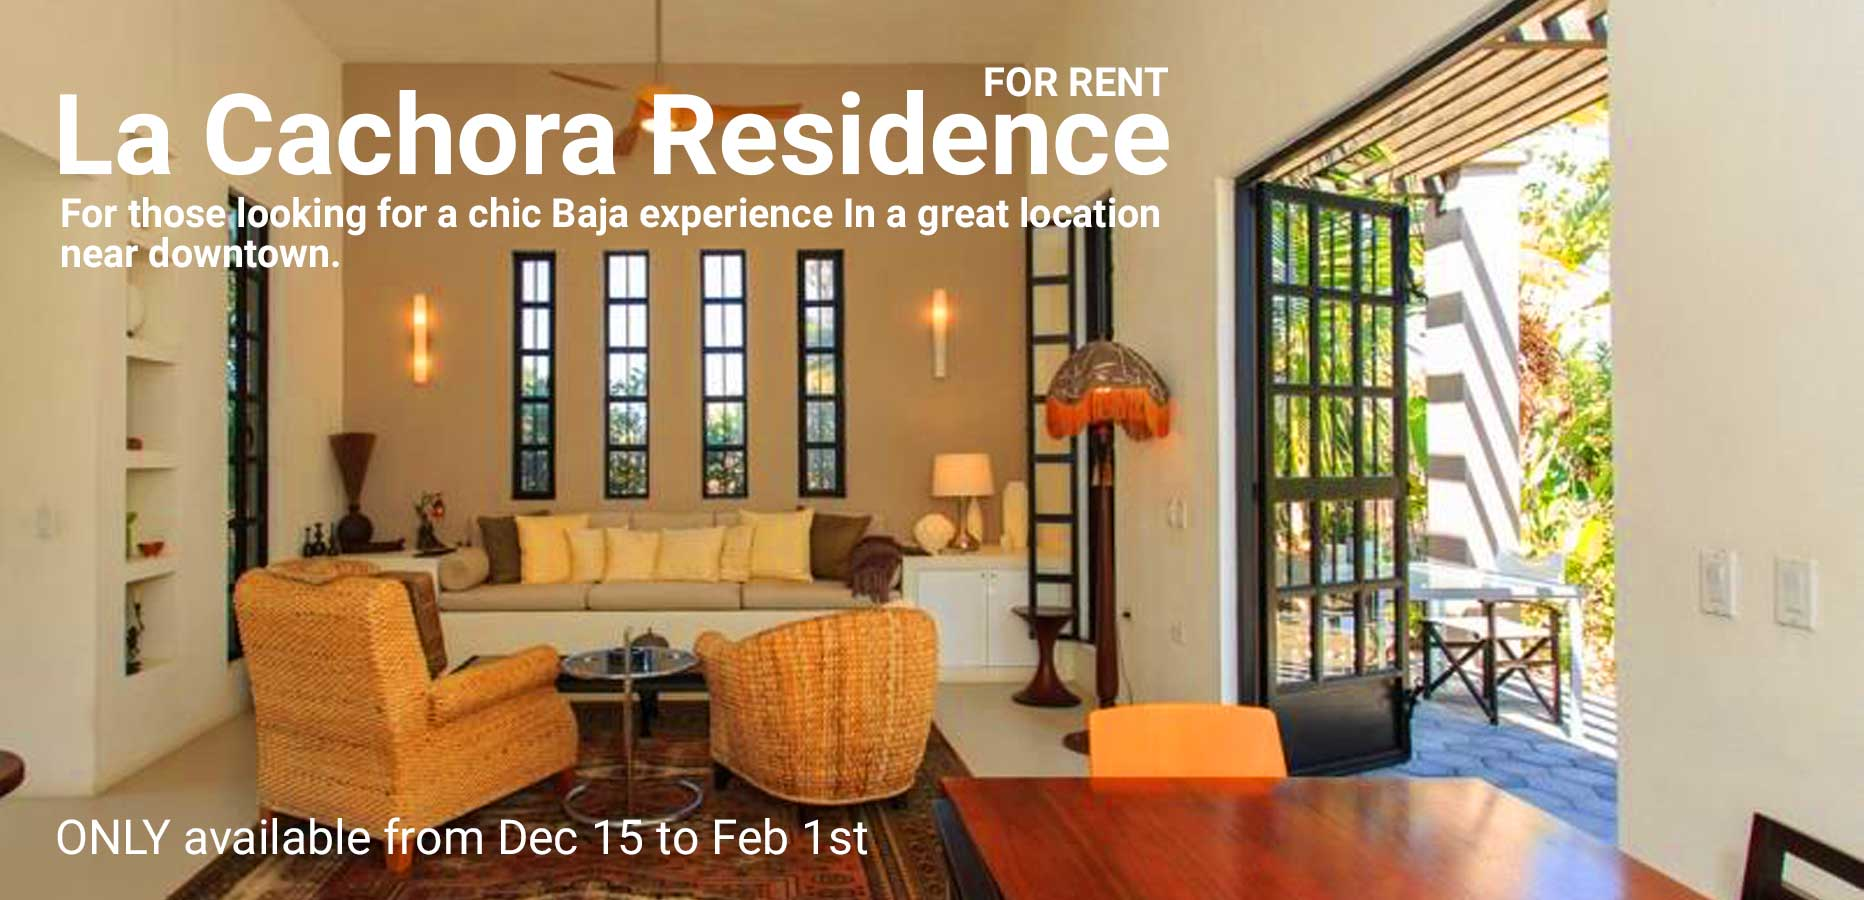 La Cachora Residencial For Rent